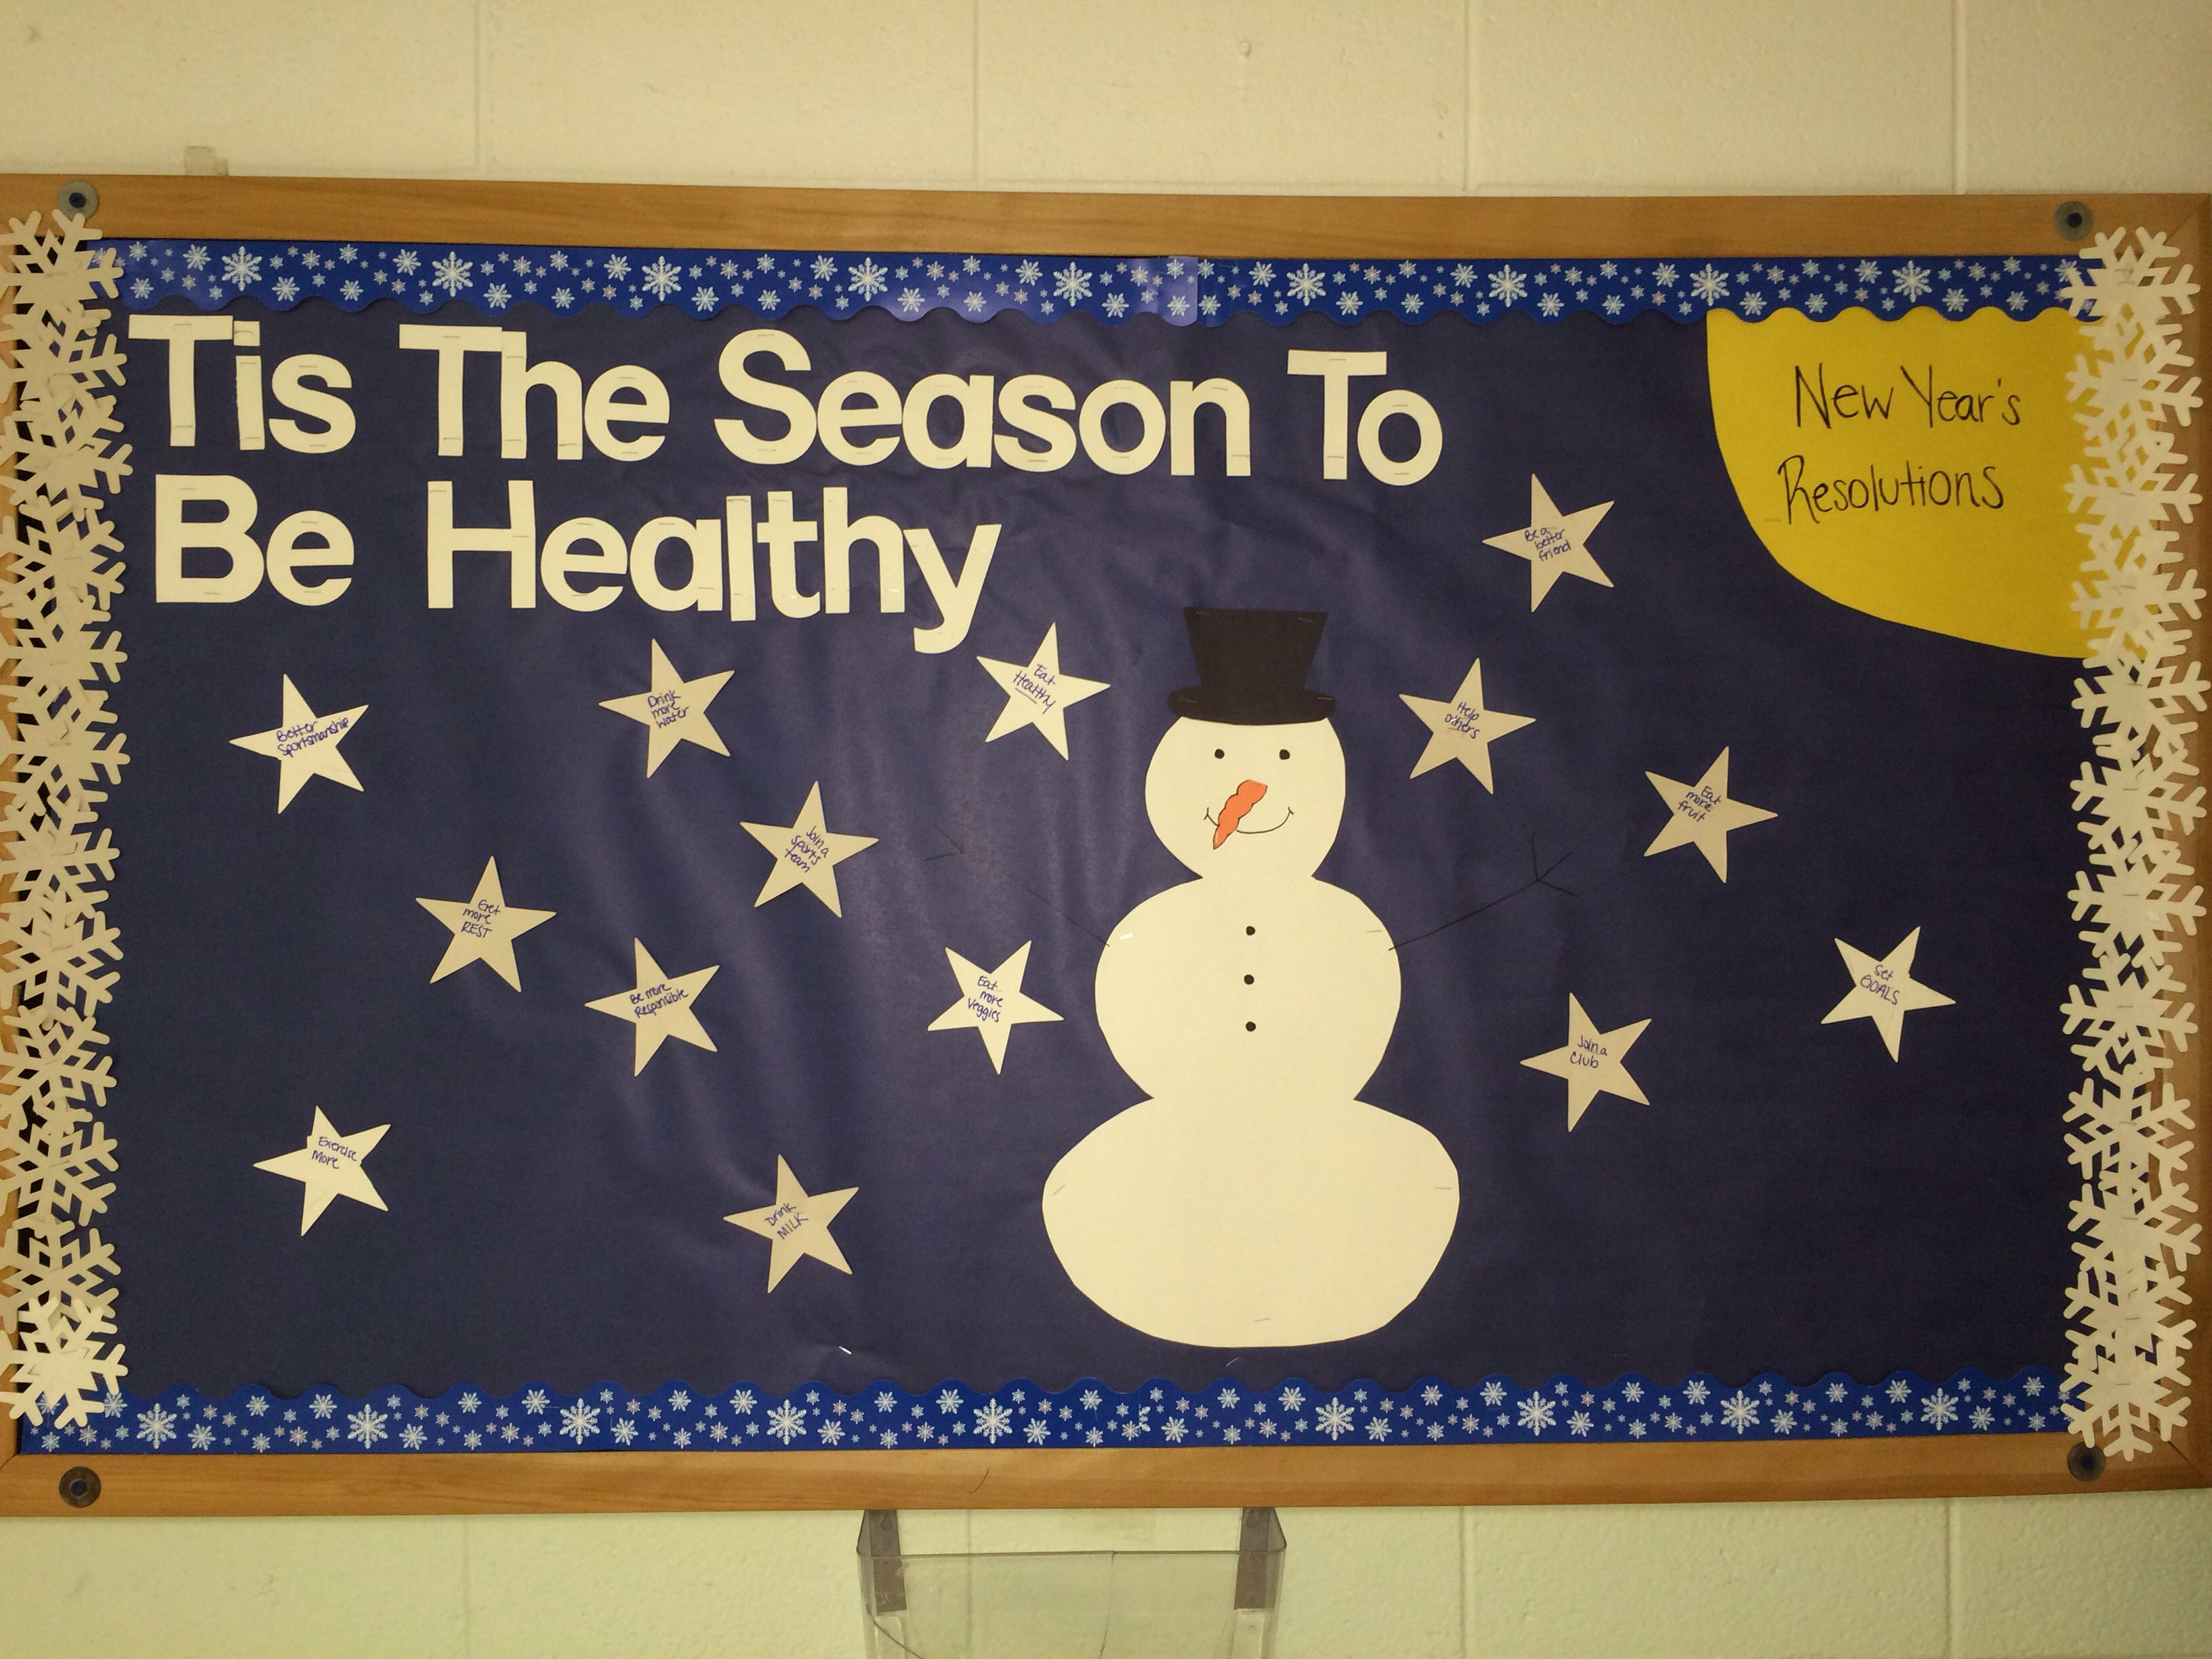 Winter Bulletin Board All The Stars Have Ideas For Healthy New Years Resolutions Boards Nurse